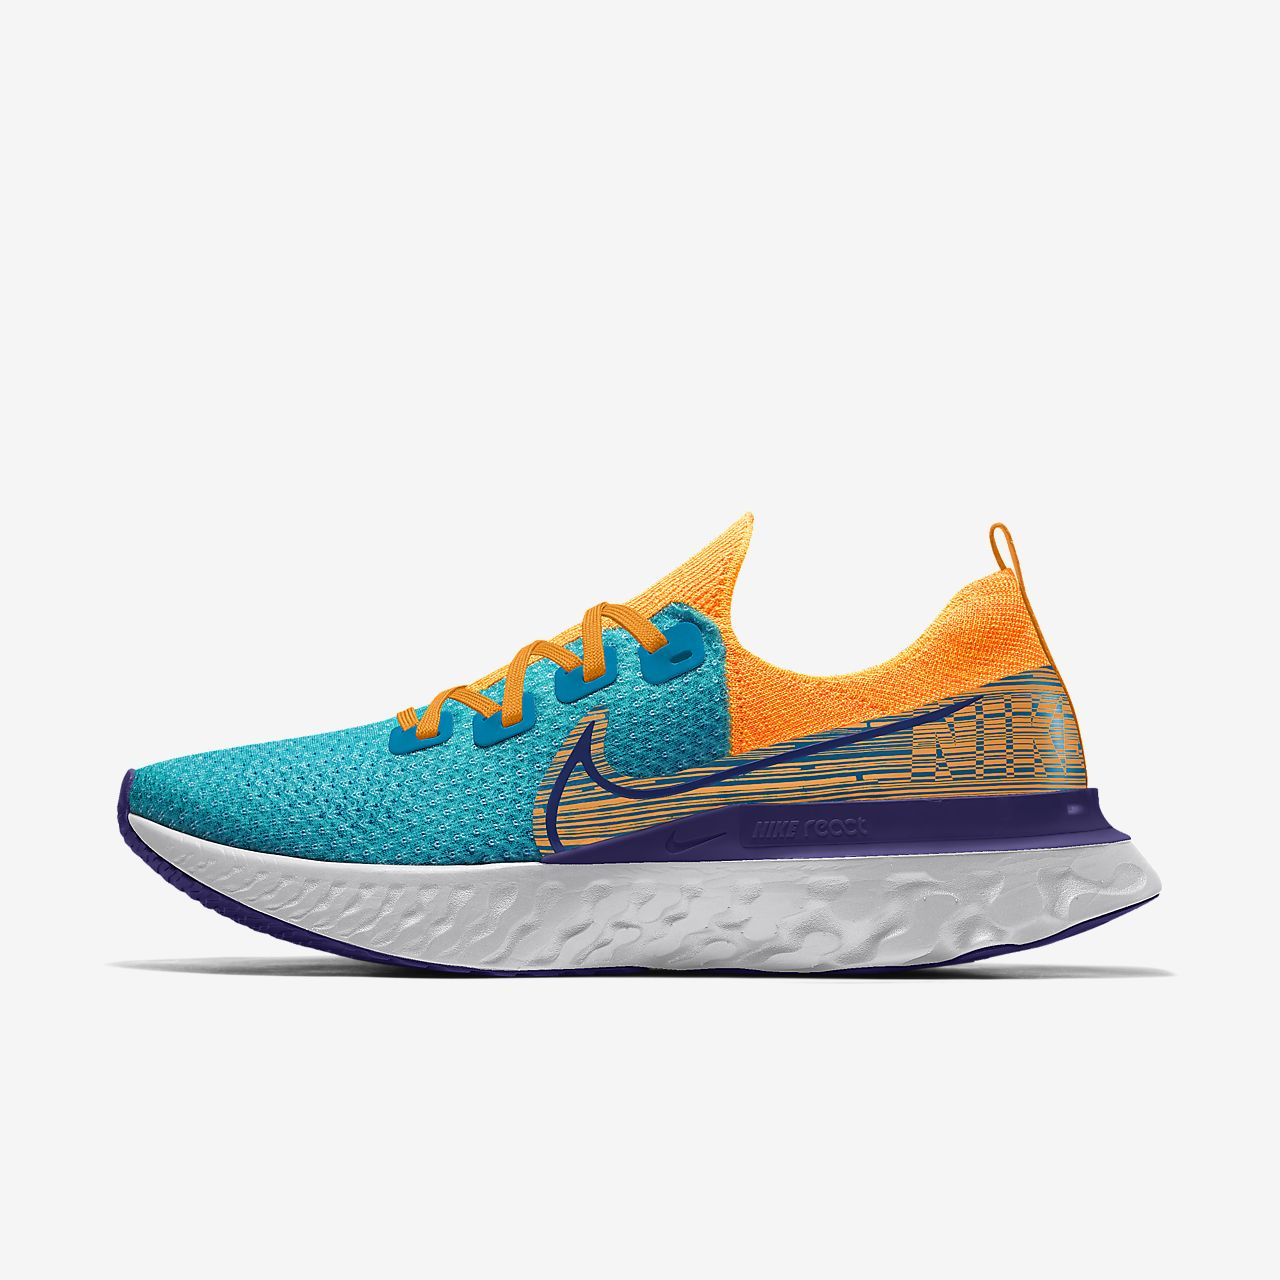 Nike React Infinity Run Flyknit By You 專屬訂製男款跑鞋